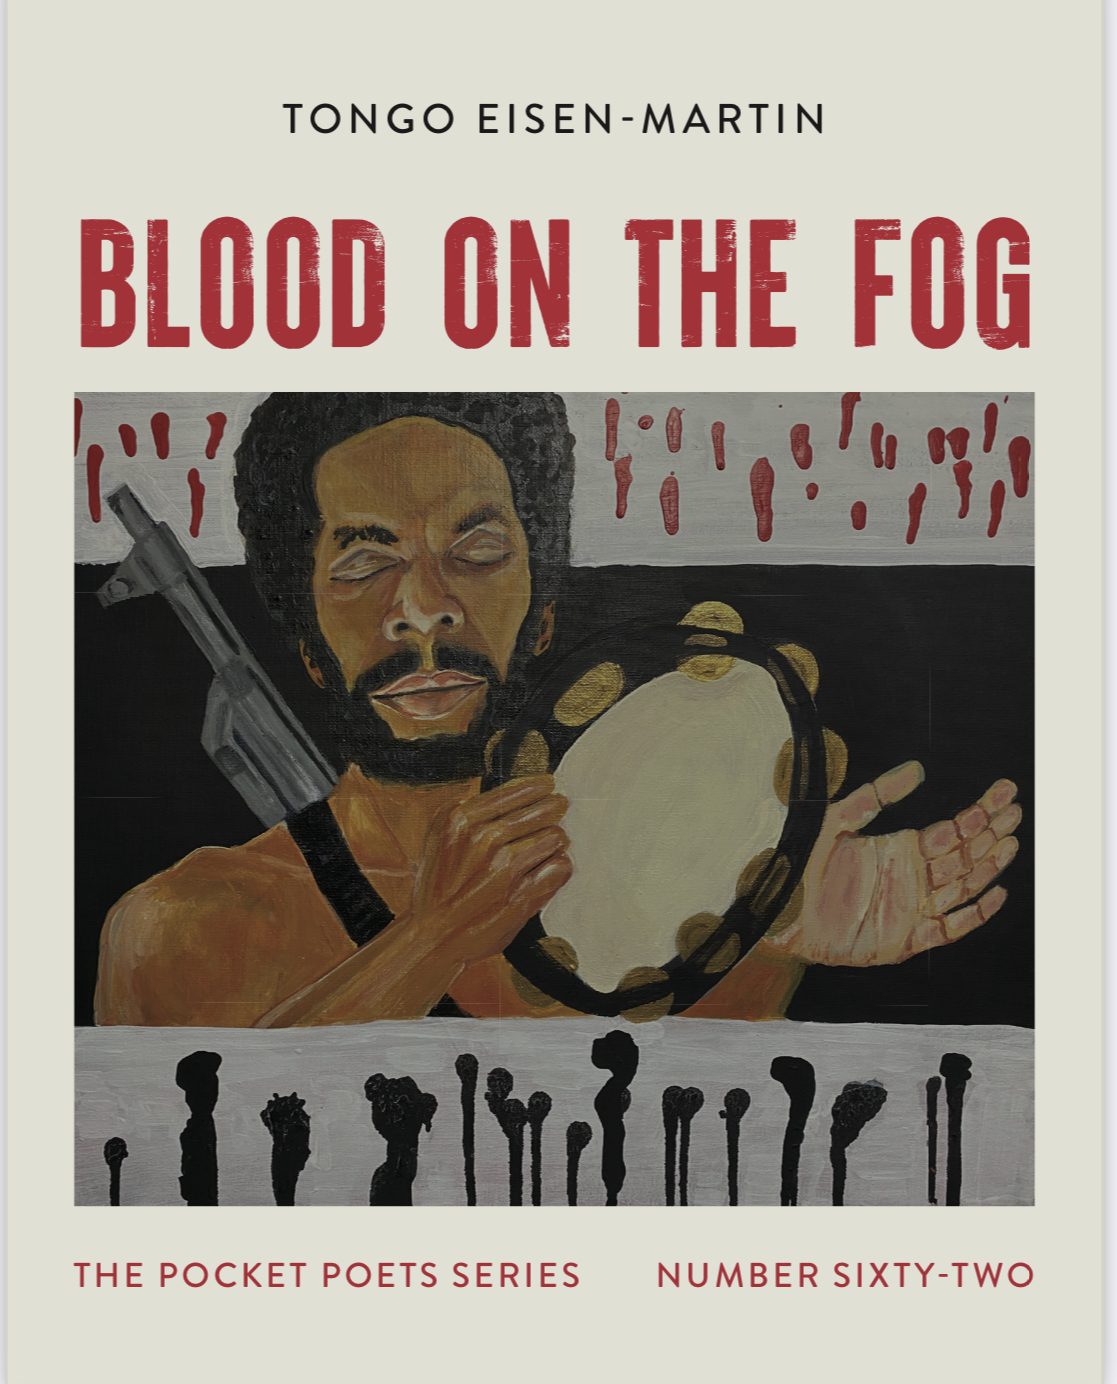 Blood on the Fog by Tongo Eisen-Martin book cover